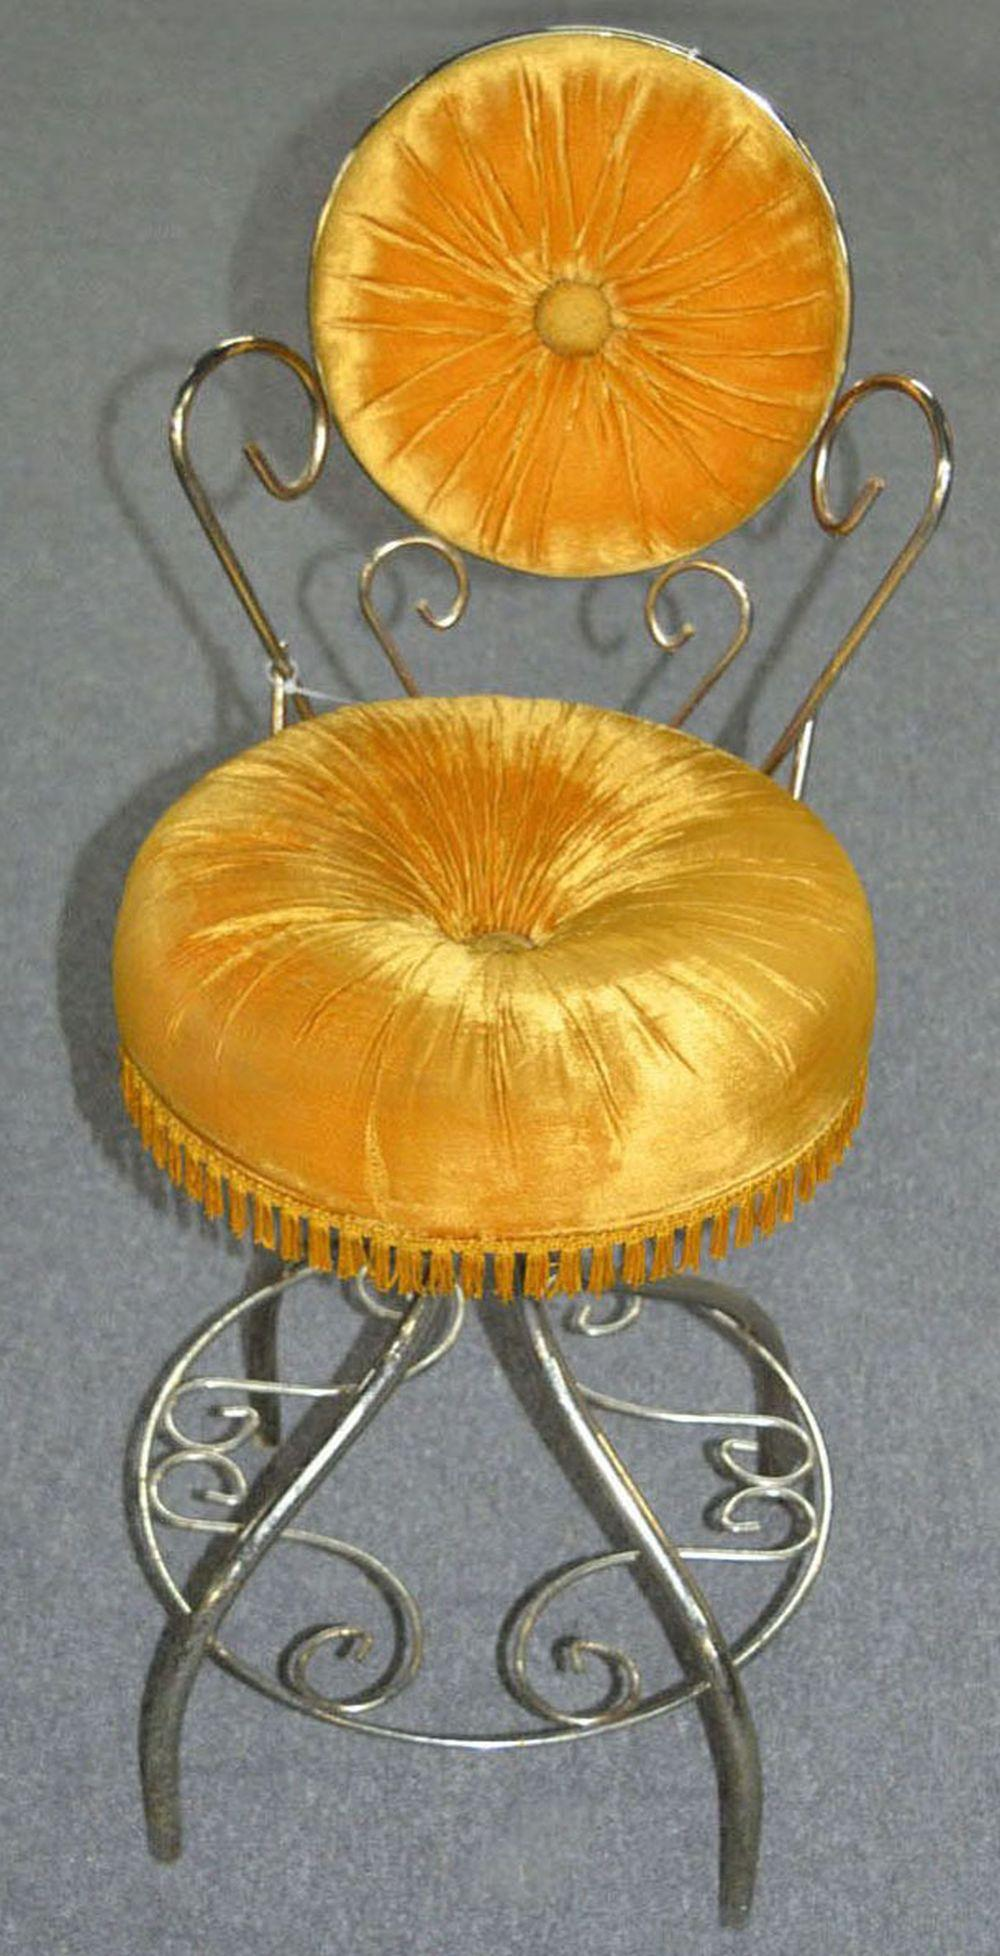 Sold Price Vintage French Vanity Chair August 1 0119 7 00 Pm Edt